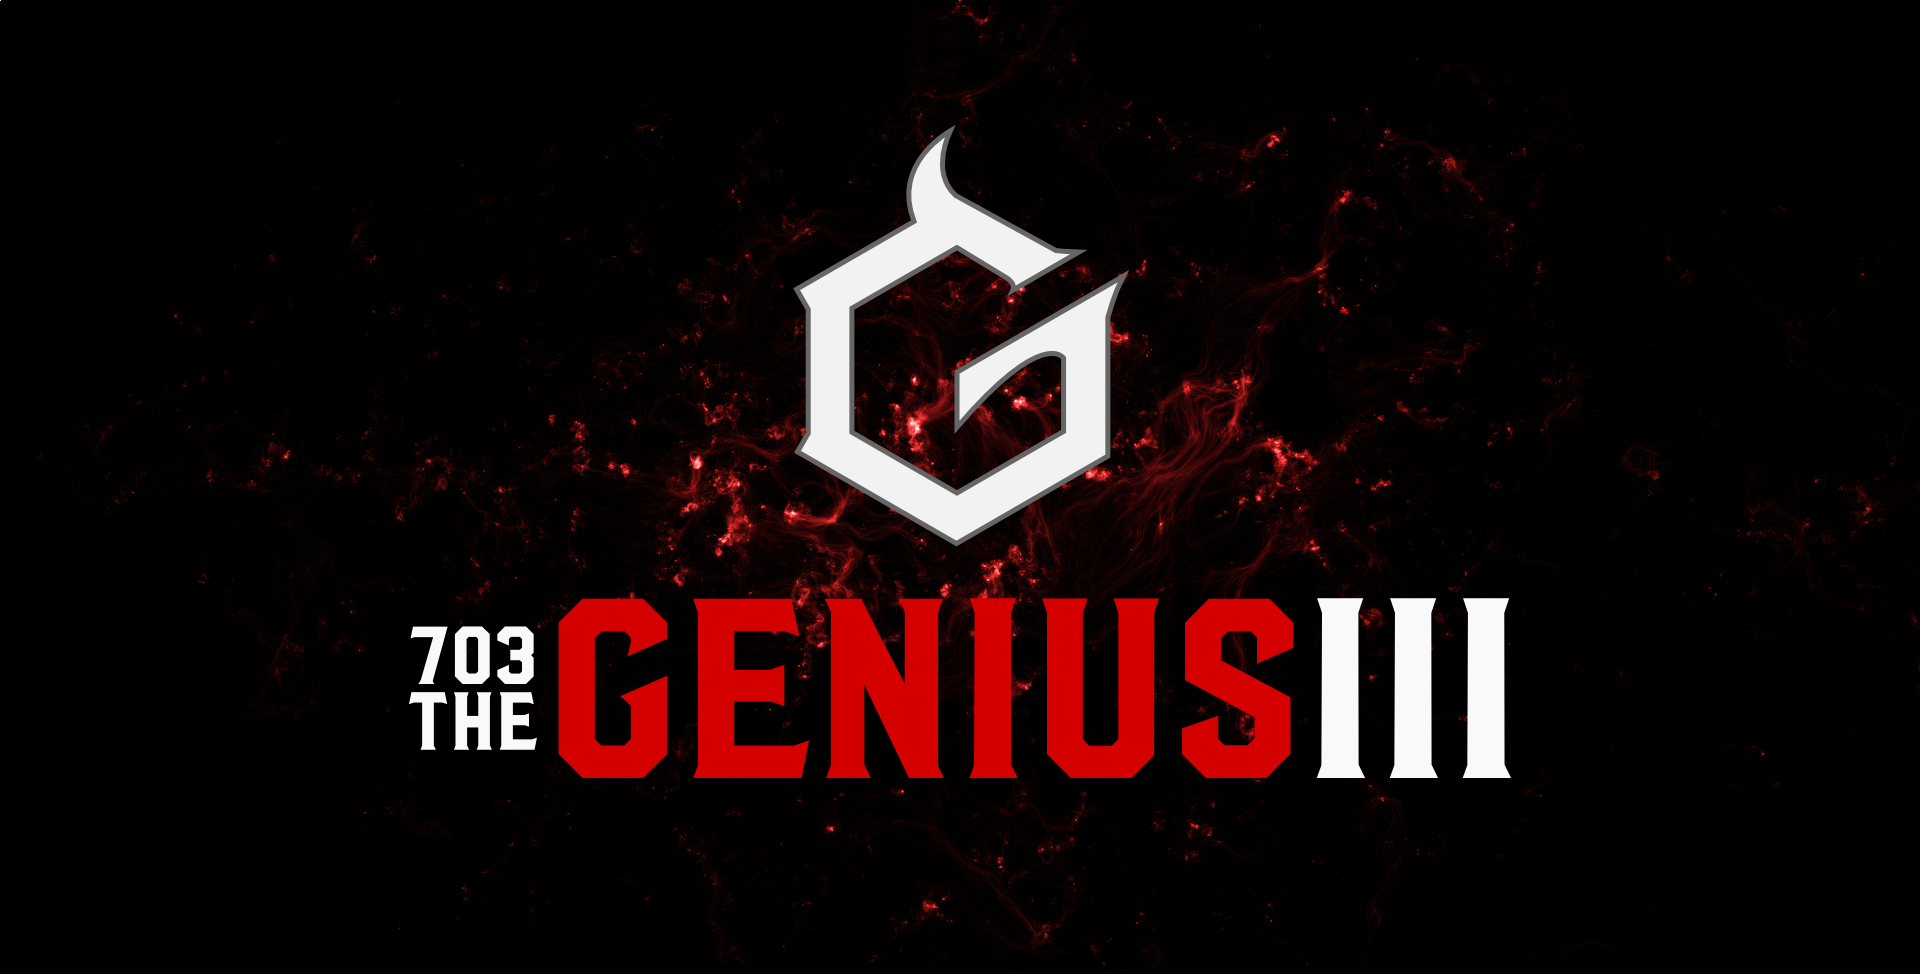 The Genius III | 703 ORG Network Wiki | FANDOM powered by Wikia